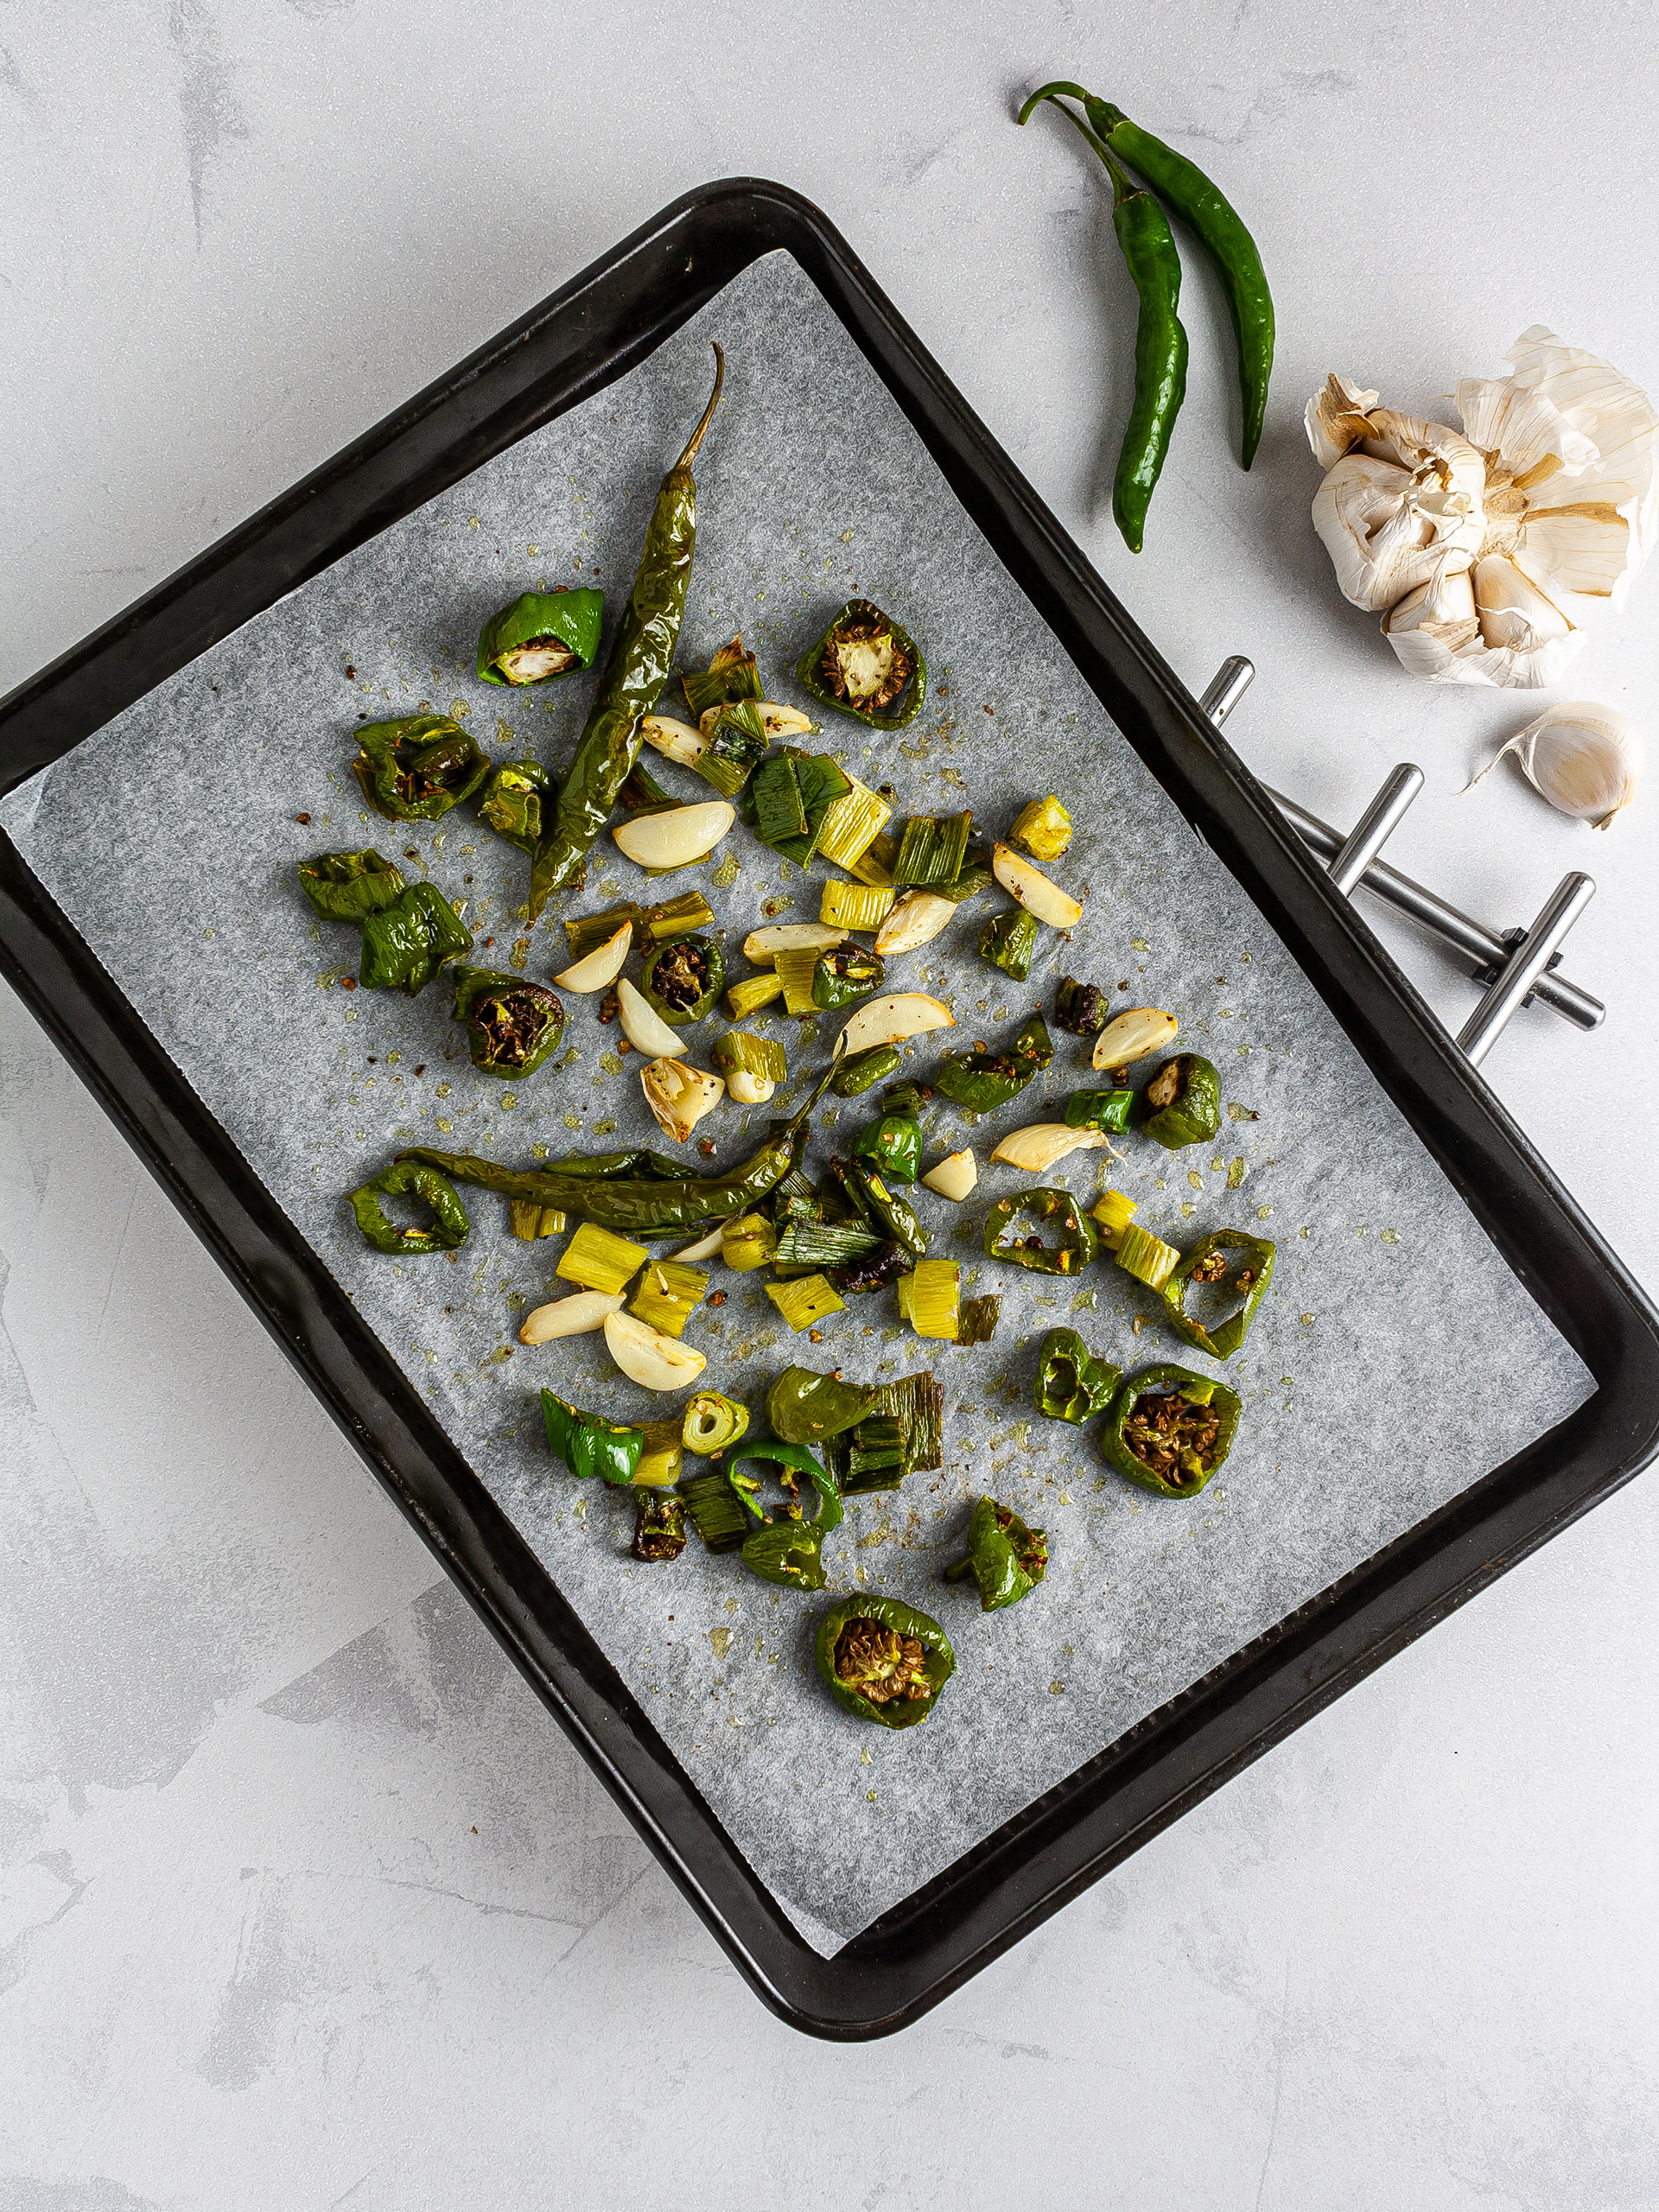 Roasted green chilli peppers with garlic and spring onions